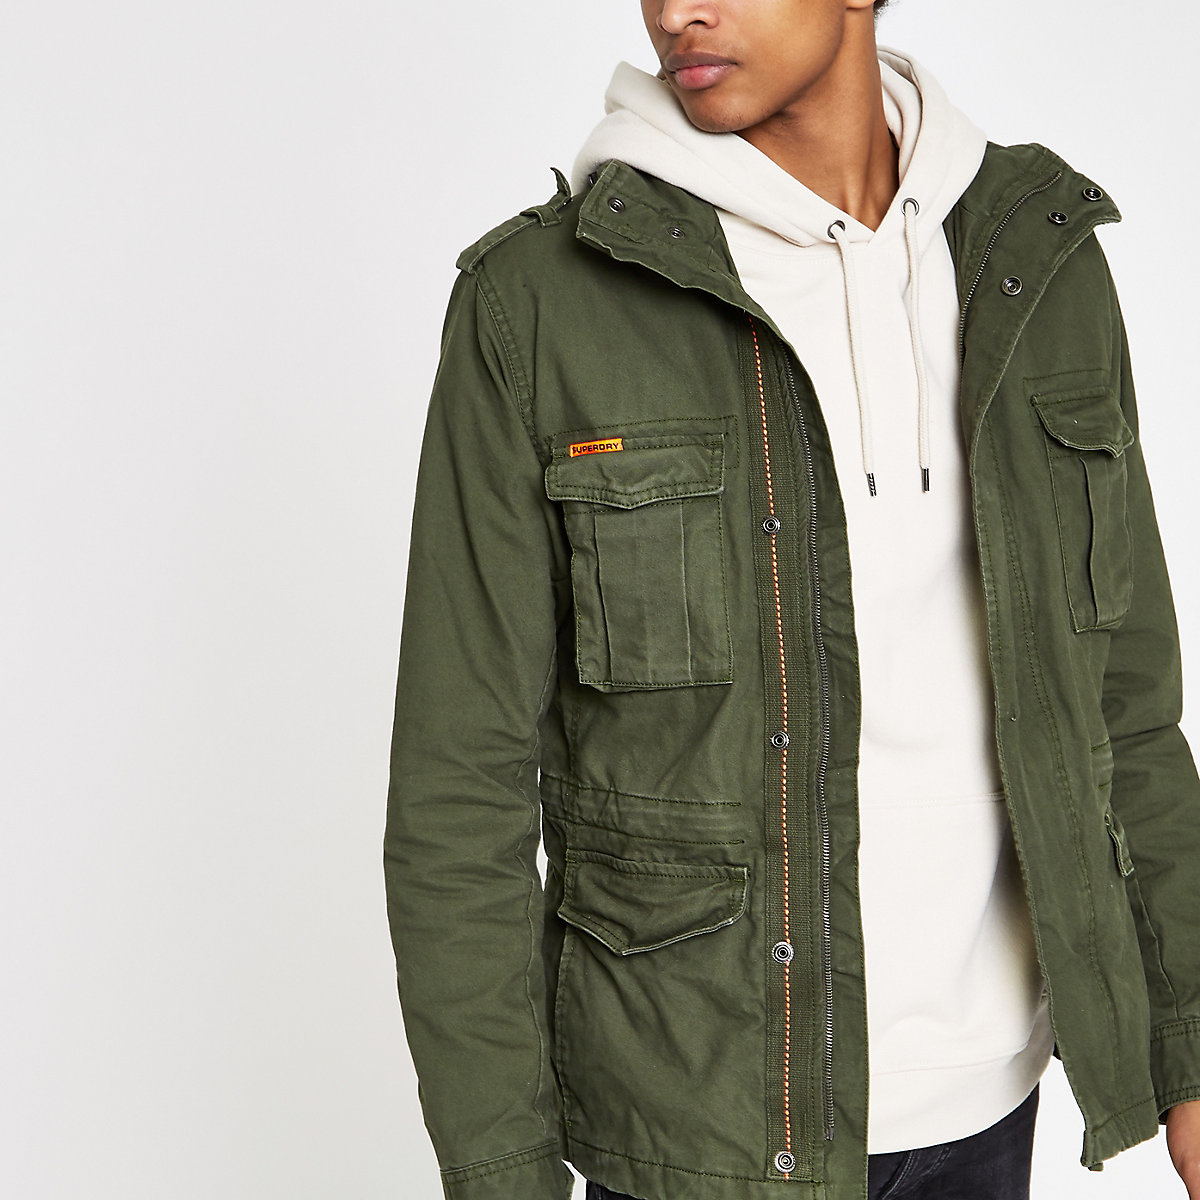 Superdry green army jacket